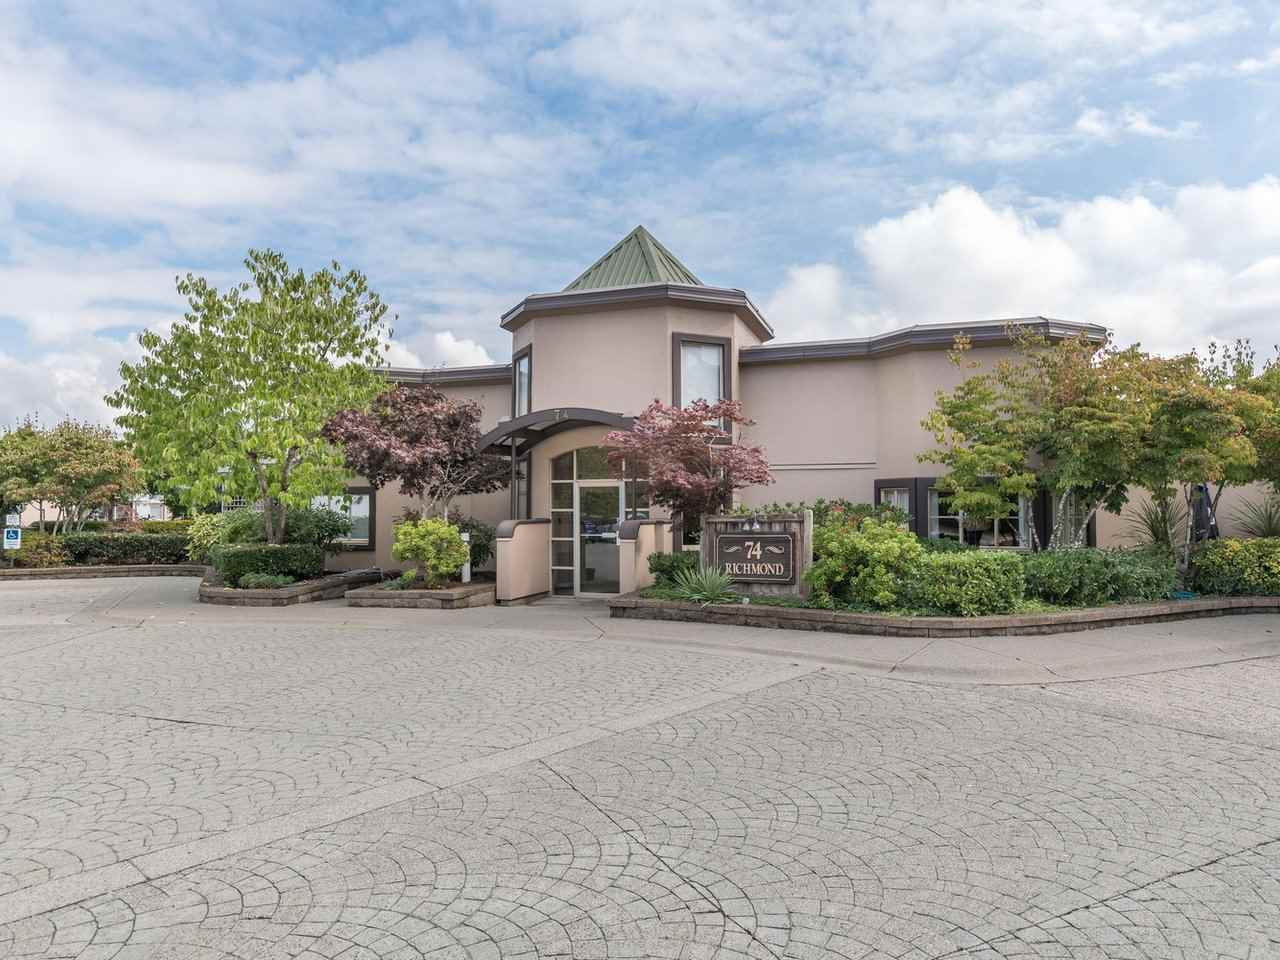 """Main Photo: 406 74 RICHMOND Street in New Westminster: Fraserview NW Condo for sale in """"Governors Court"""" : MLS®# R2407457"""